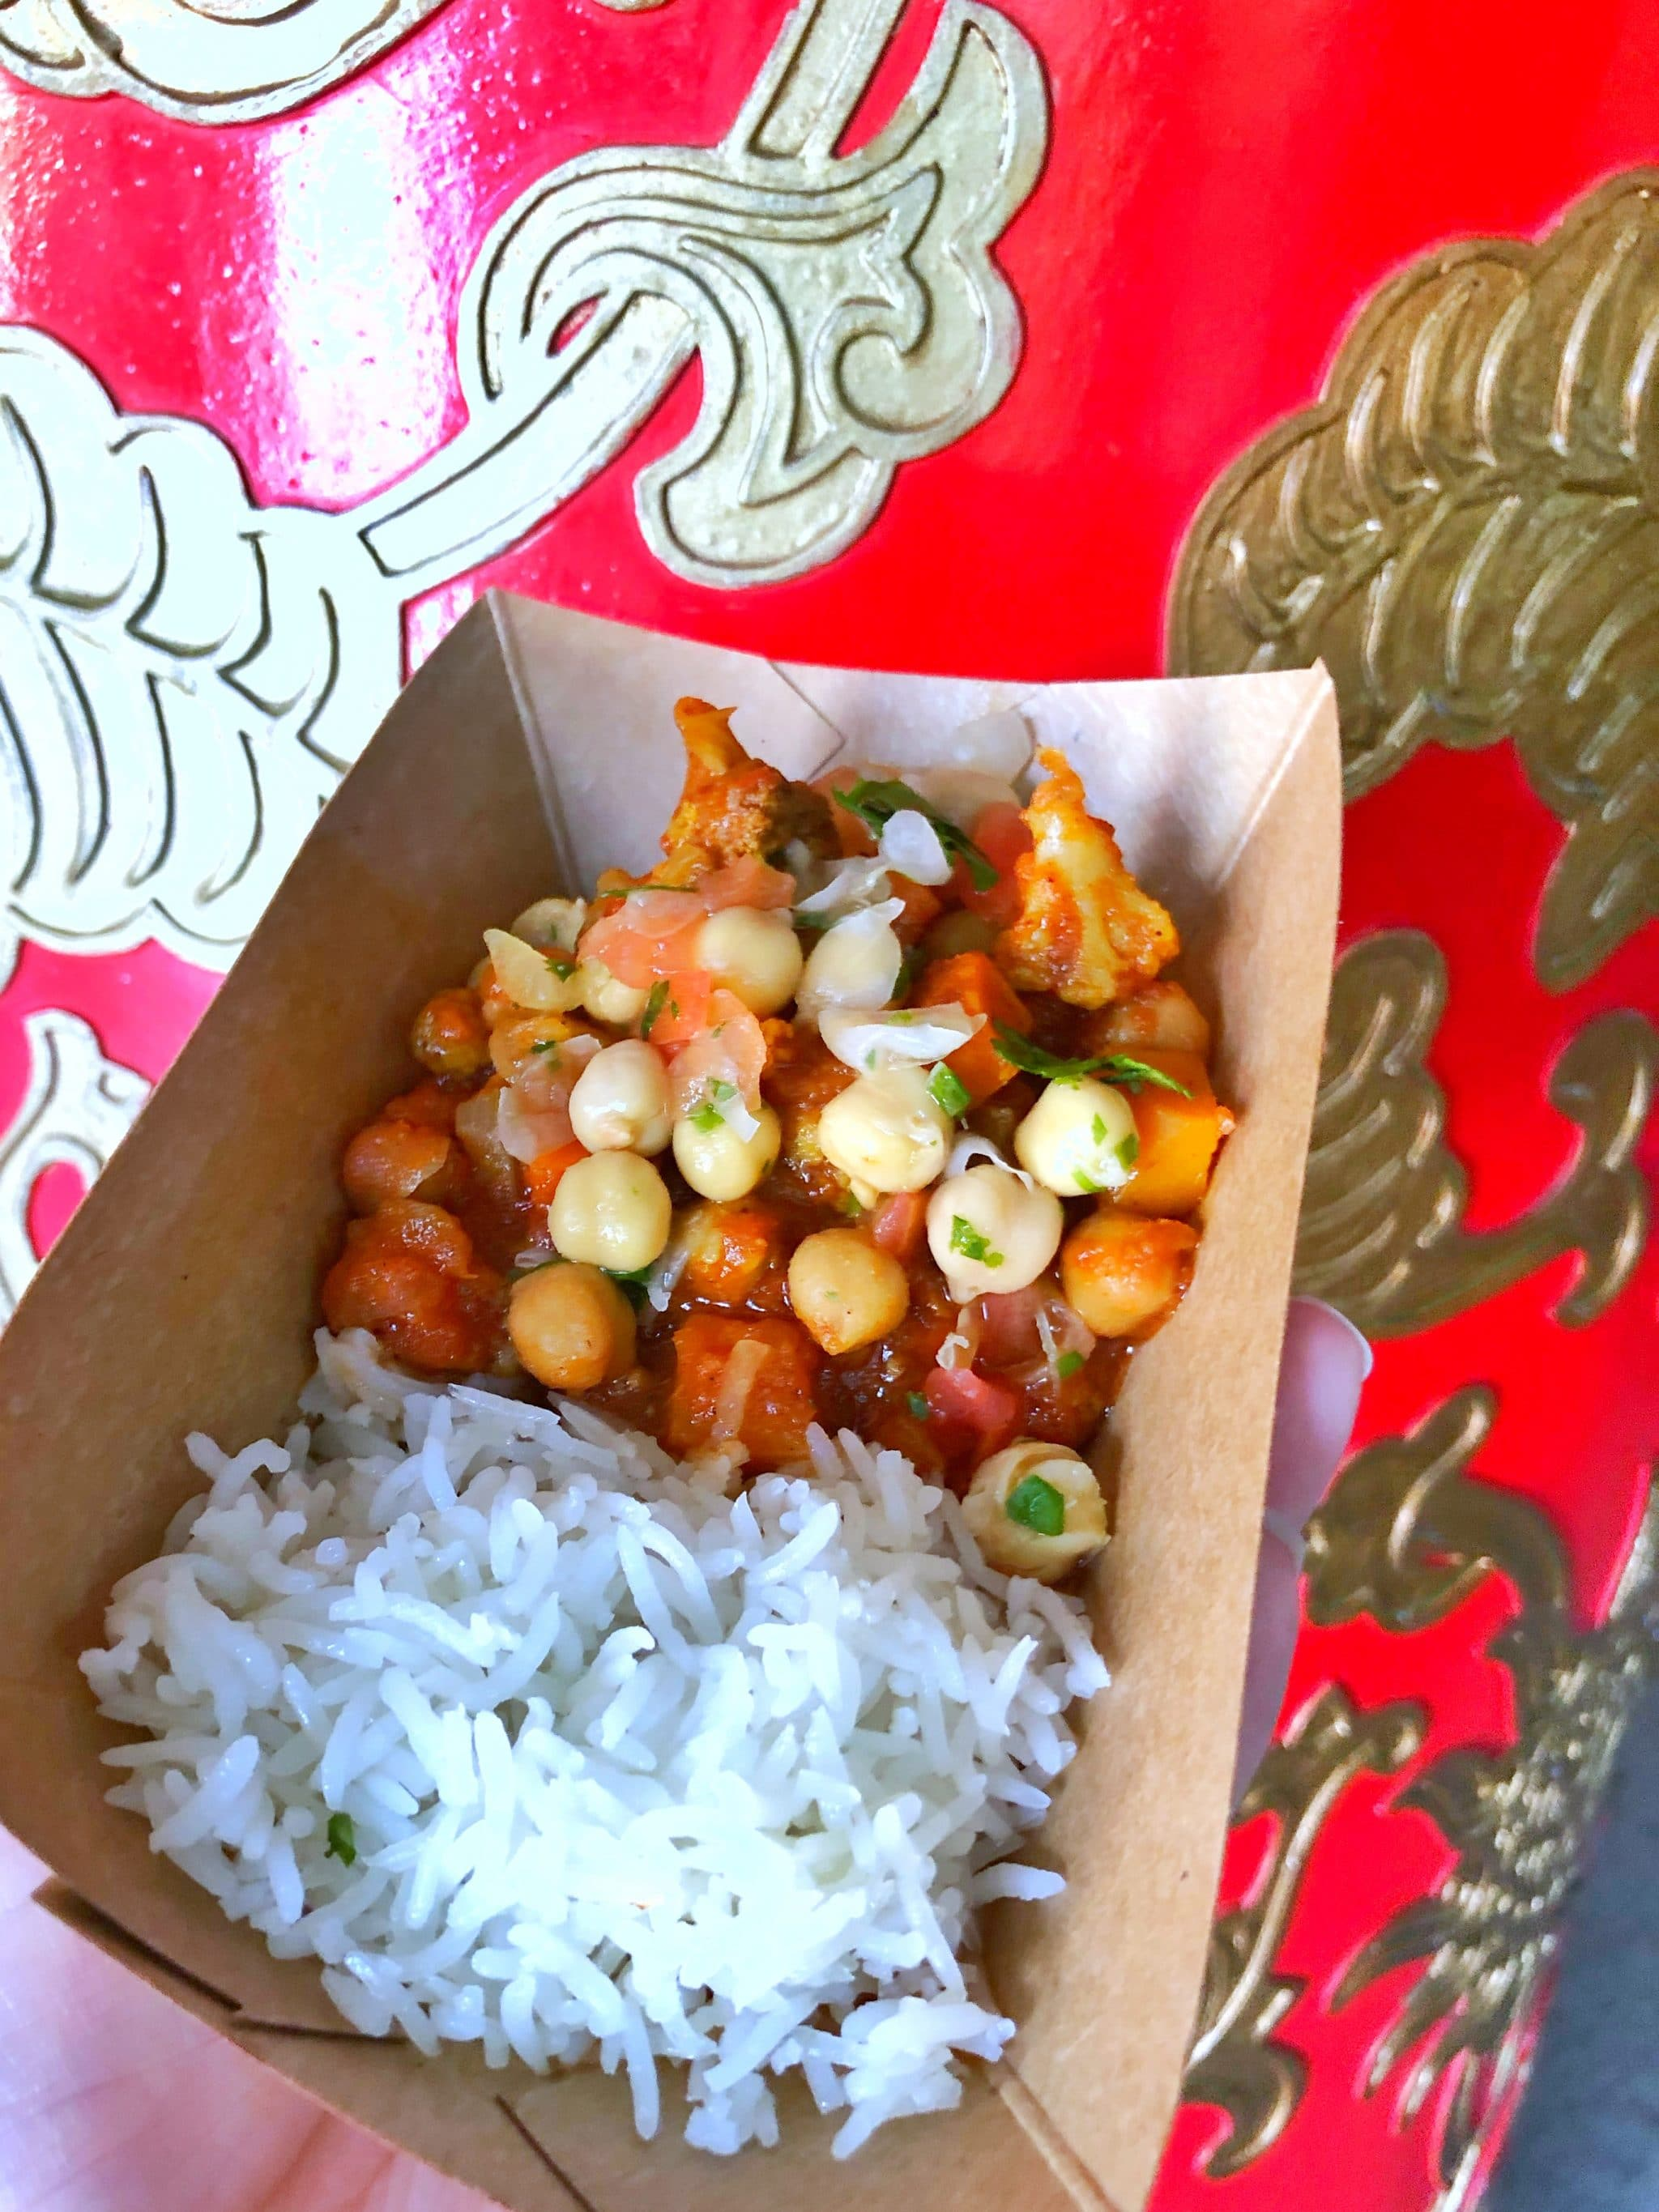 Vegan Options at the Epcot International Food and Wine Festival at Walt Disney World - Madras Red Curry